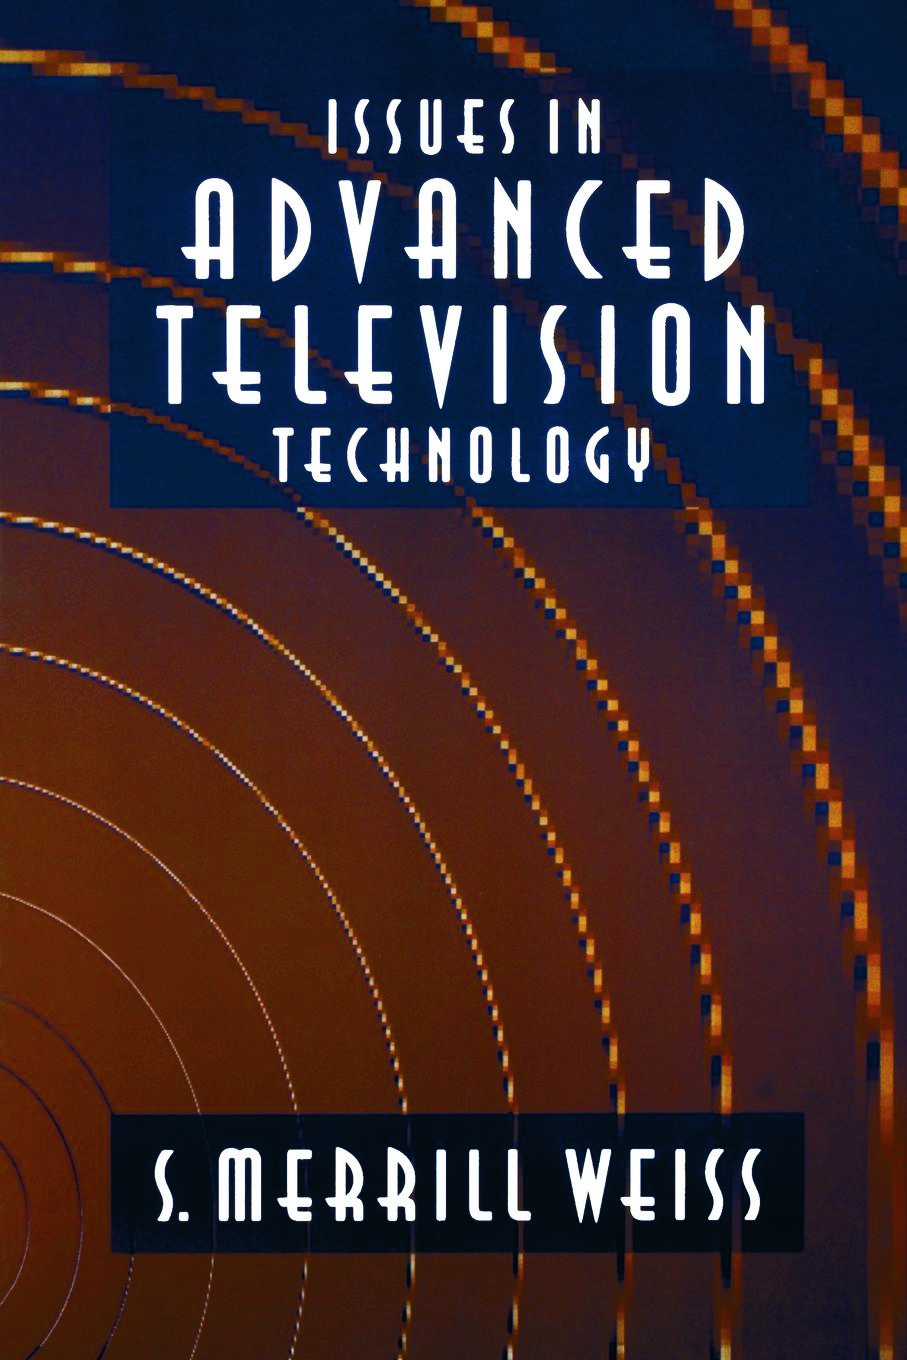 Issues in Advanced Television Technology book cover